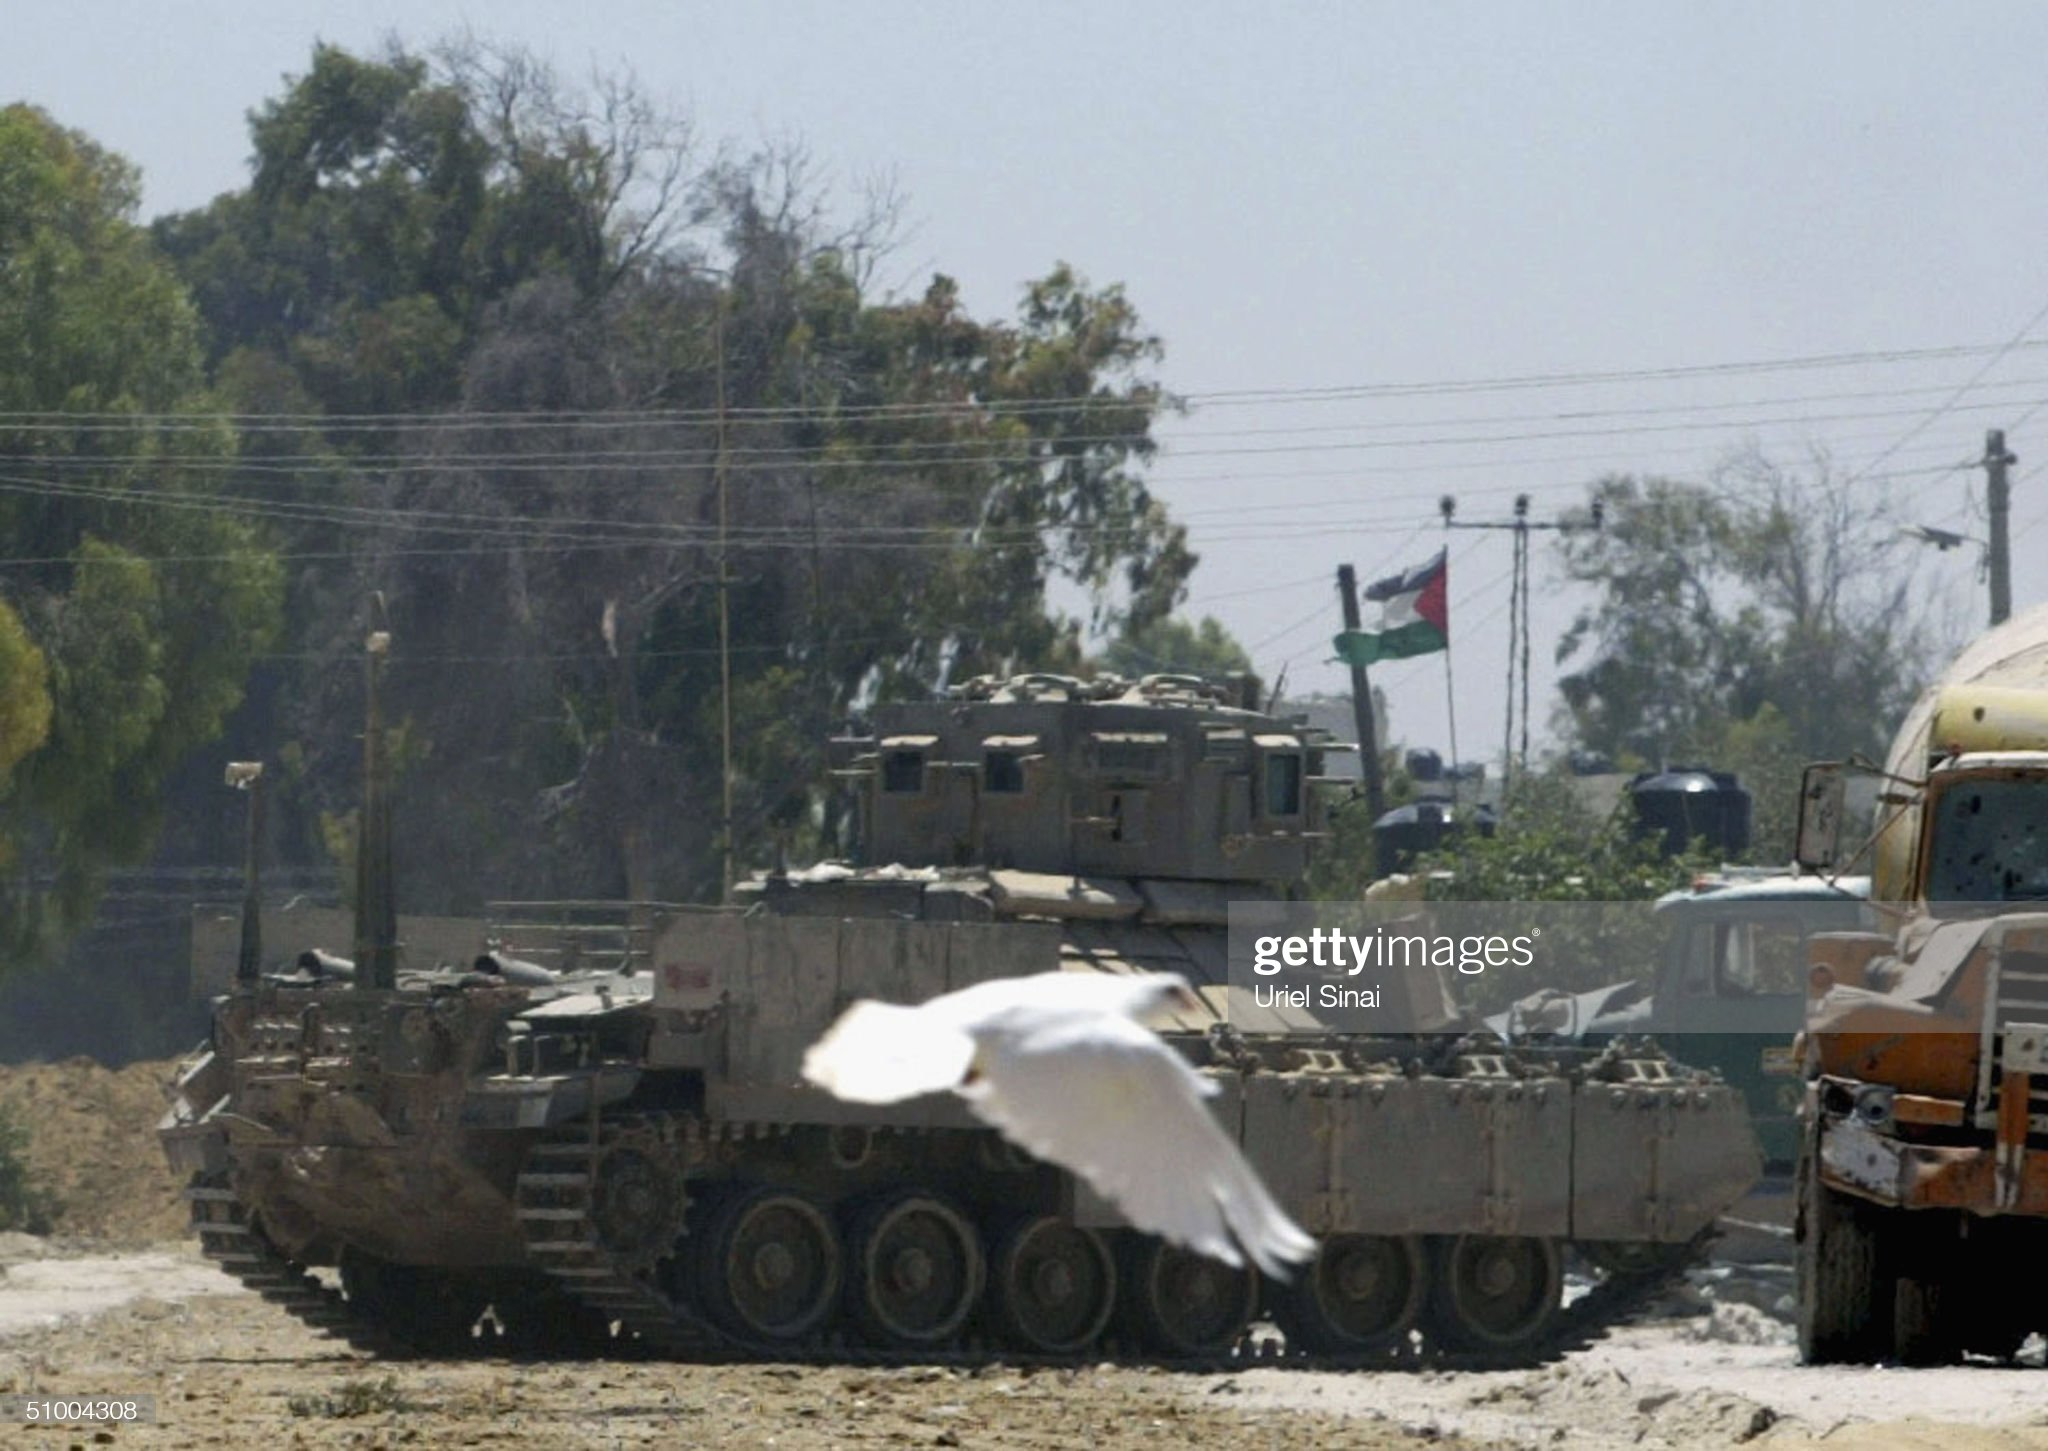 https://media.gettyimages.com/photos/white-dove-passes-an-israeli-tank-on-station-outside-an-army-base-by-picture-id51004308?s=2048x2048